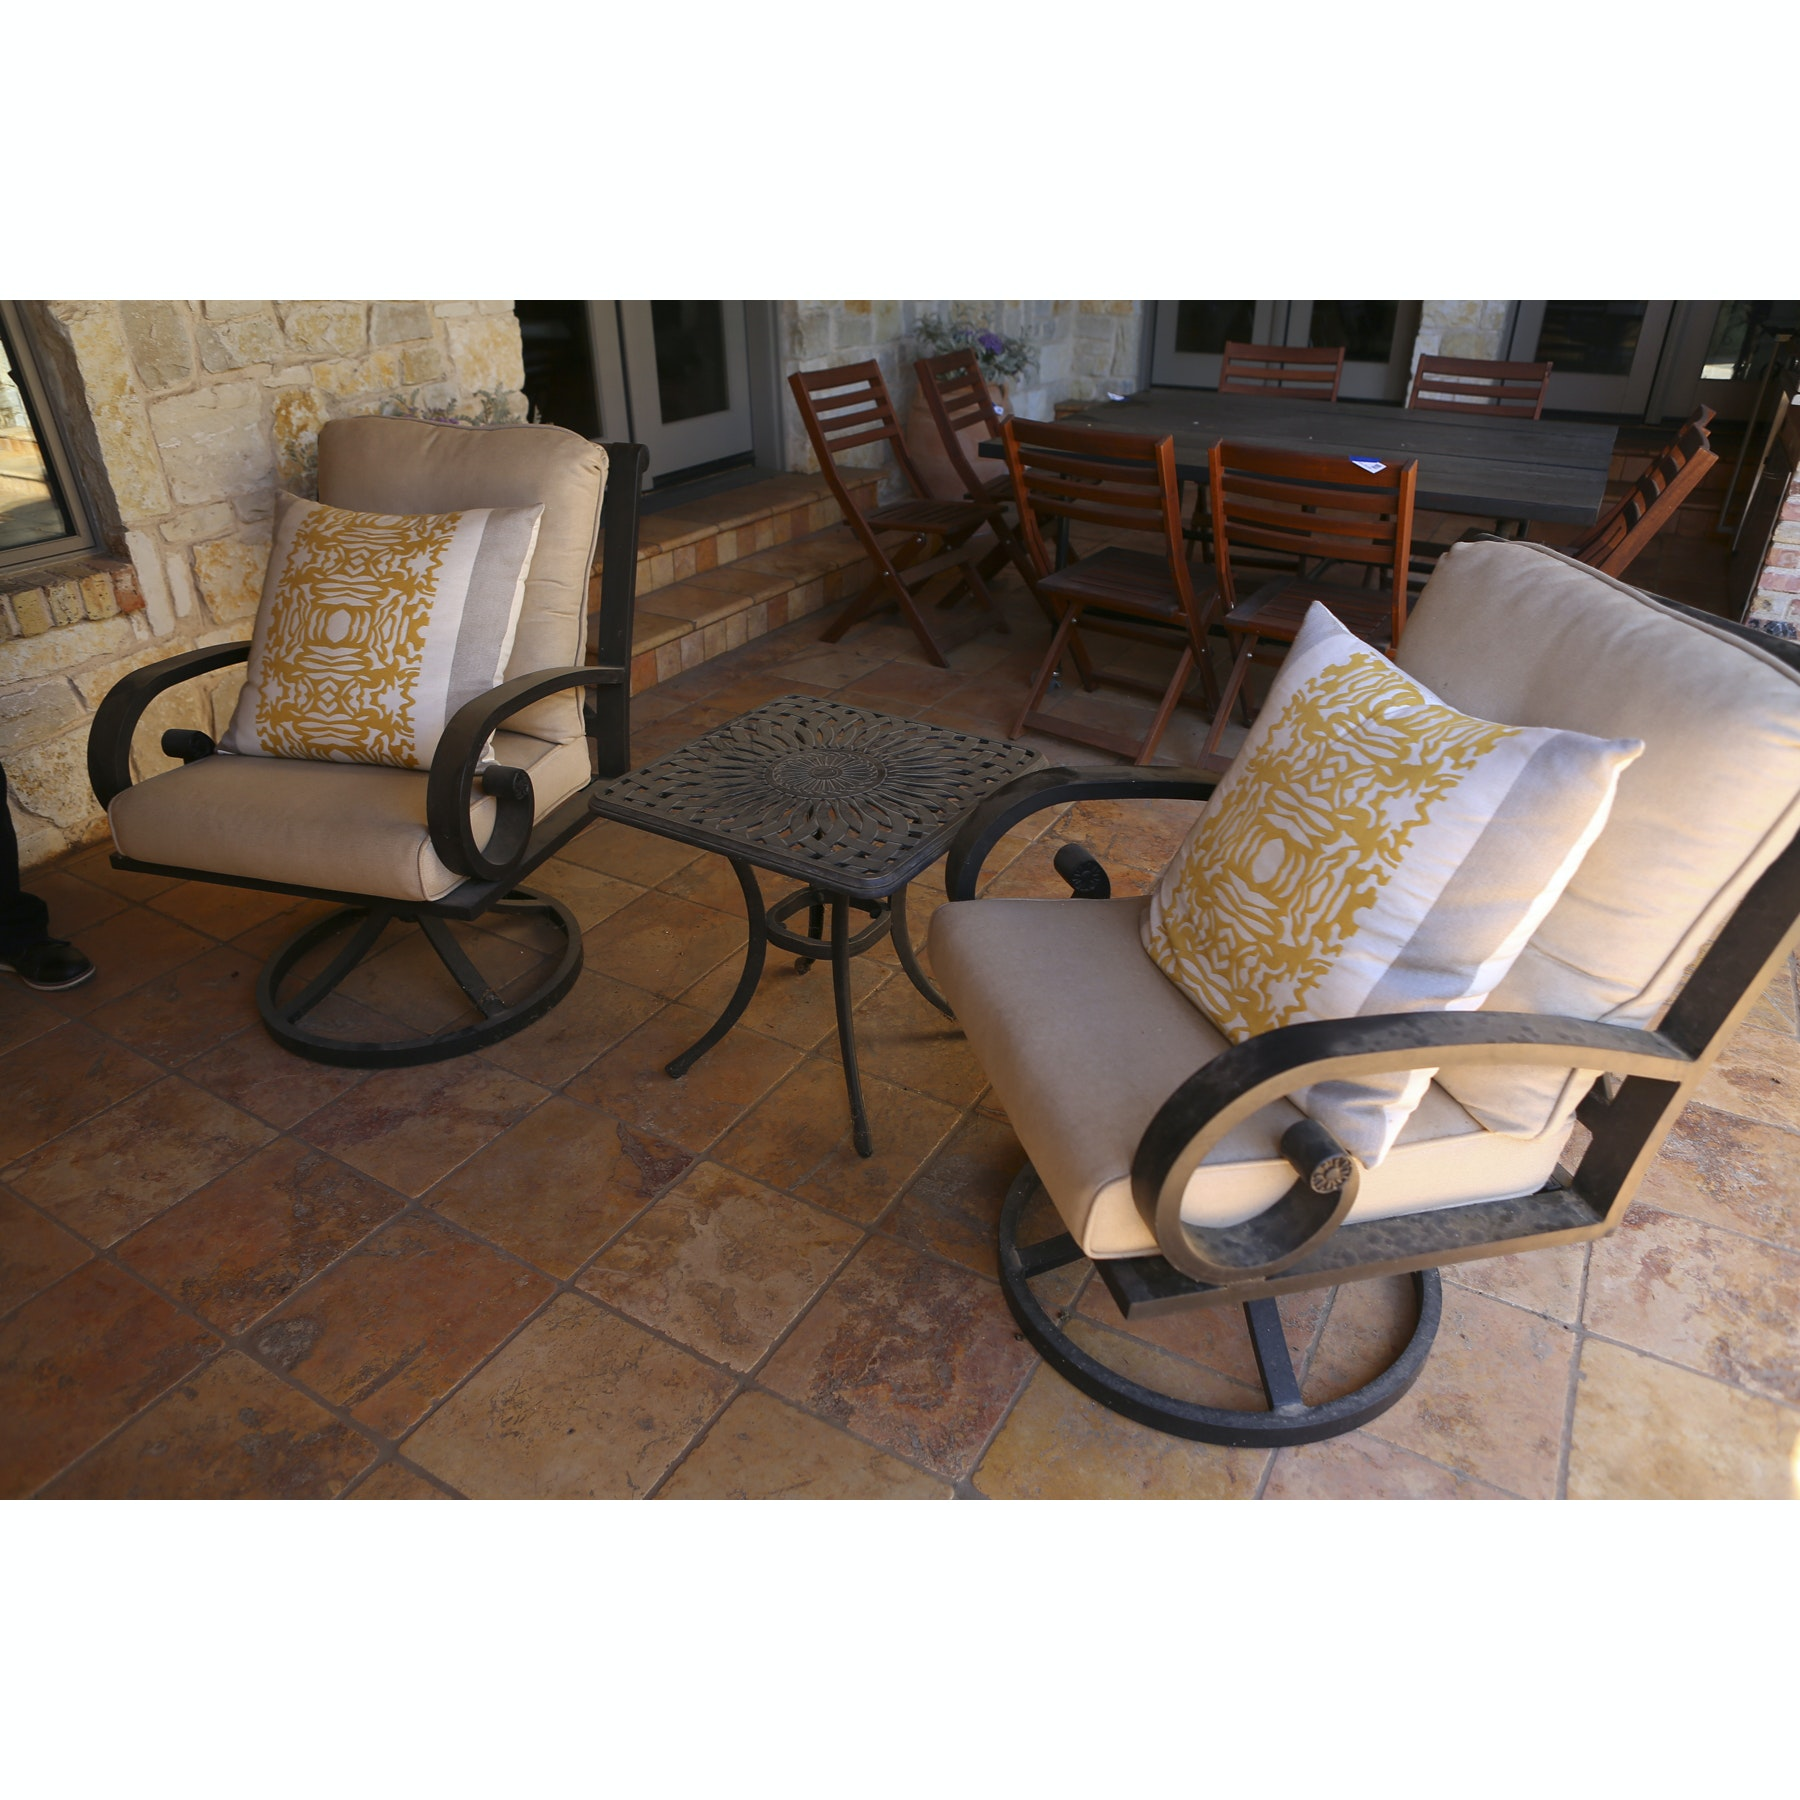 Patio Chairs  with Throw Pillows and Side Table